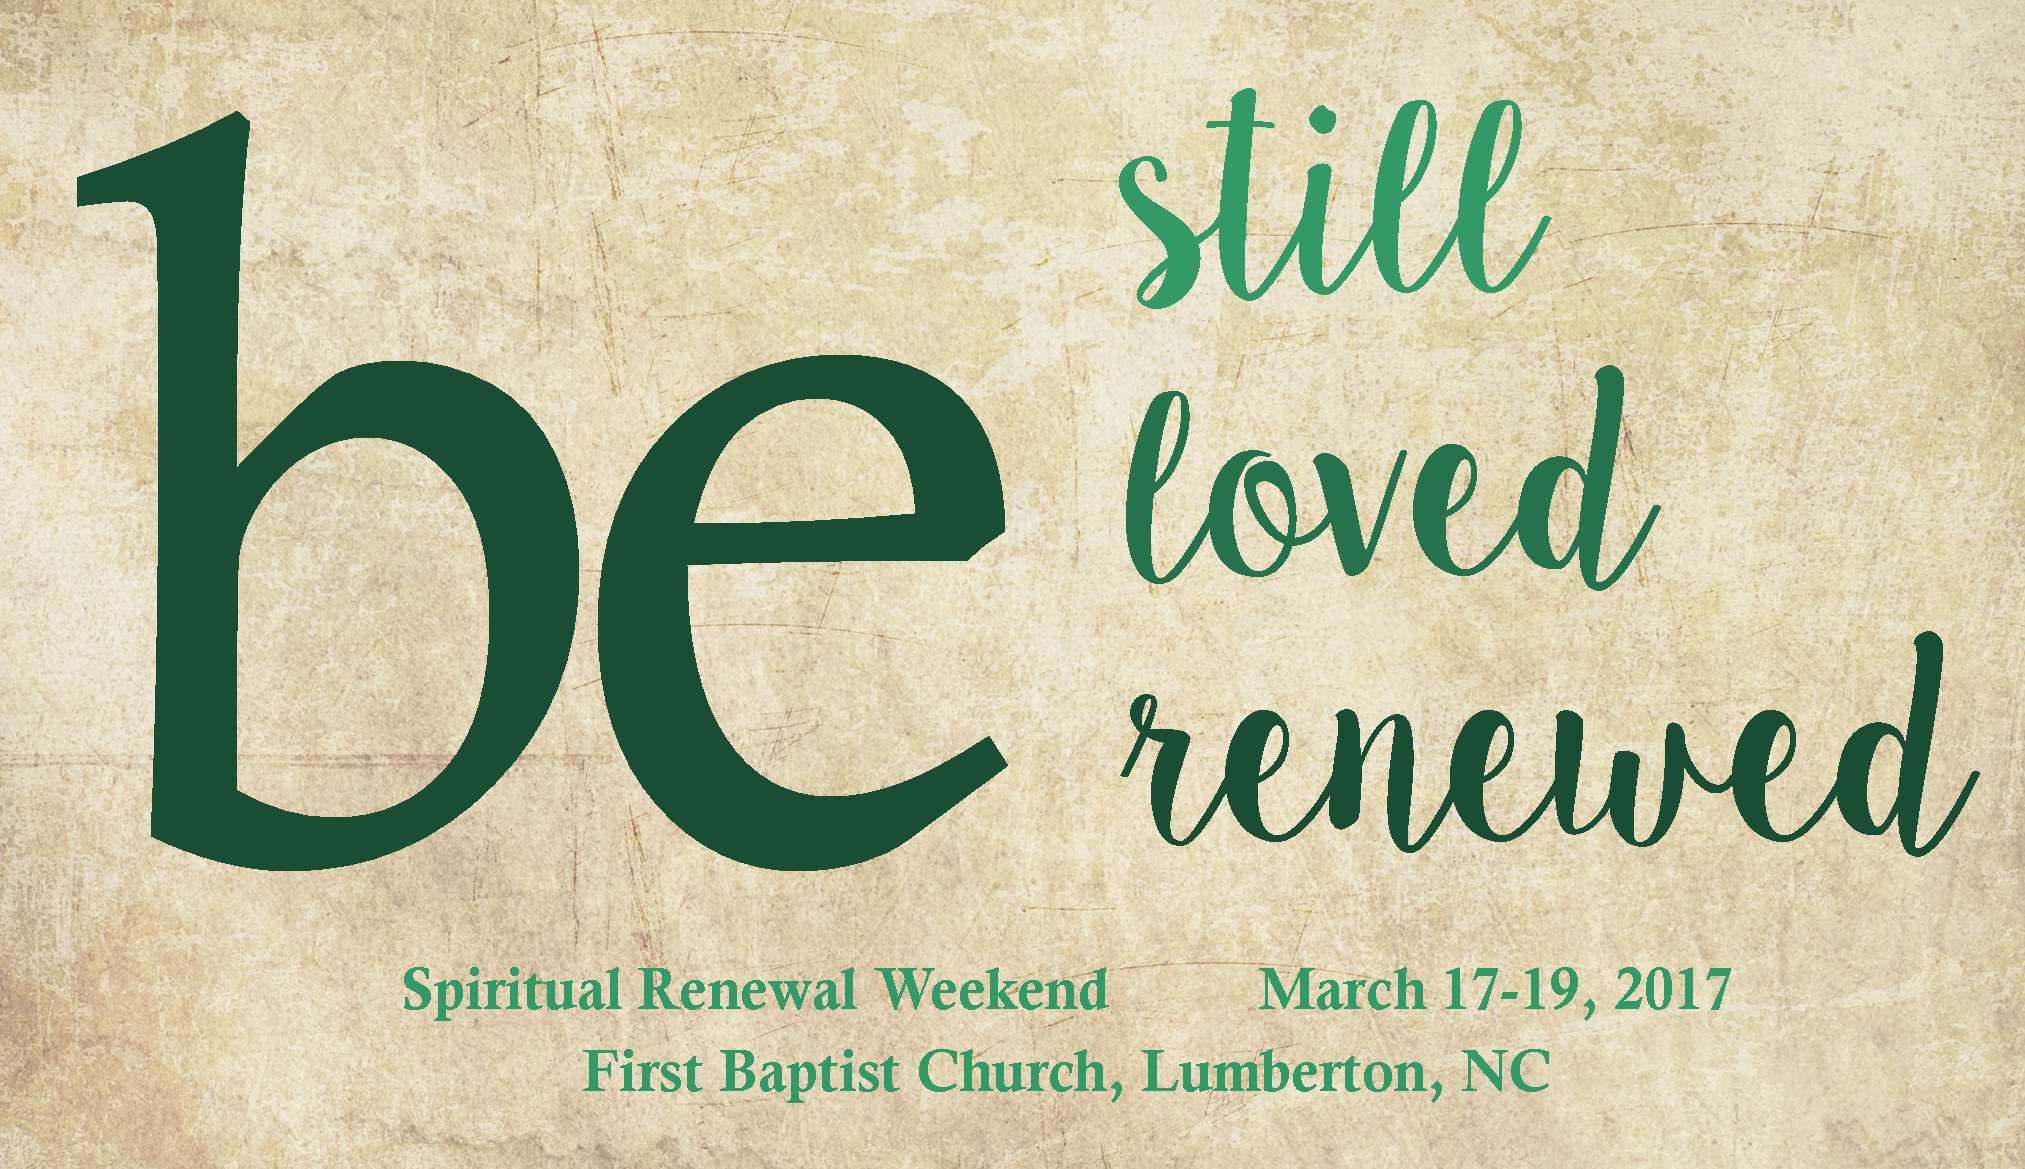 Spiritual Renewal Weekend 2017 – First Baptist Church, Lumberton NC